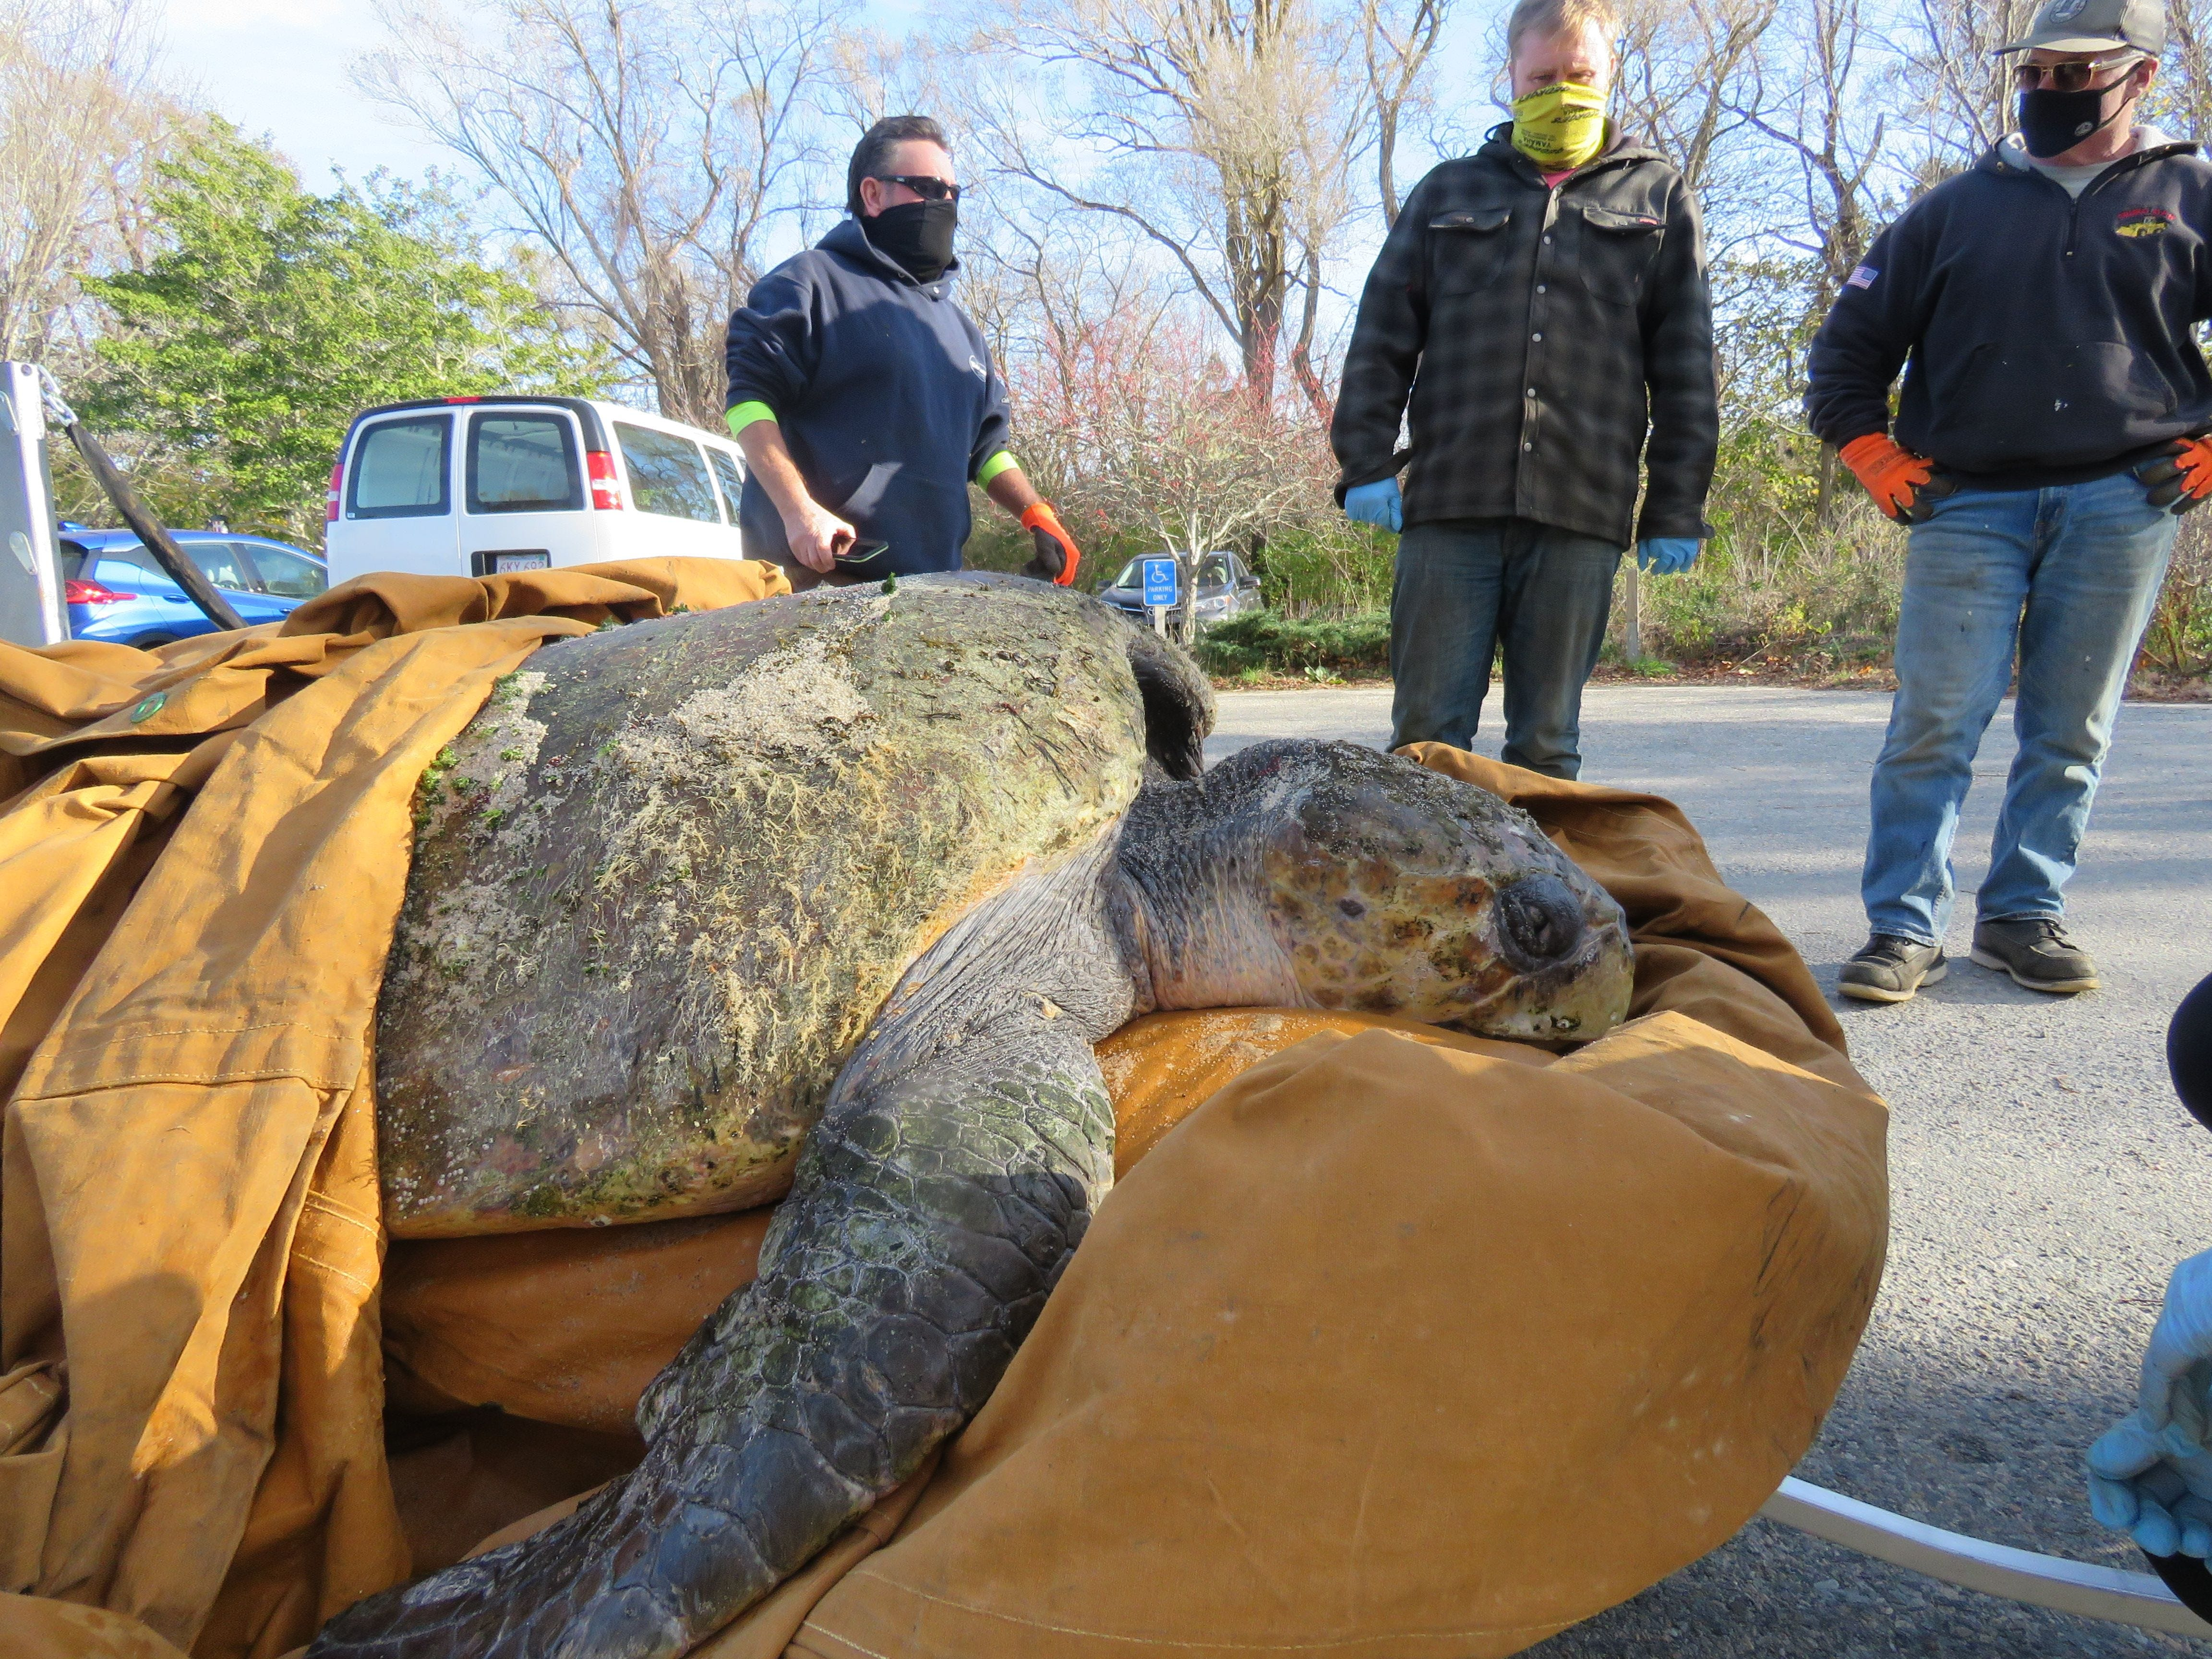 350-pound loggerhead among more than 150 cold-stunned turtles rescued in Massachusetts